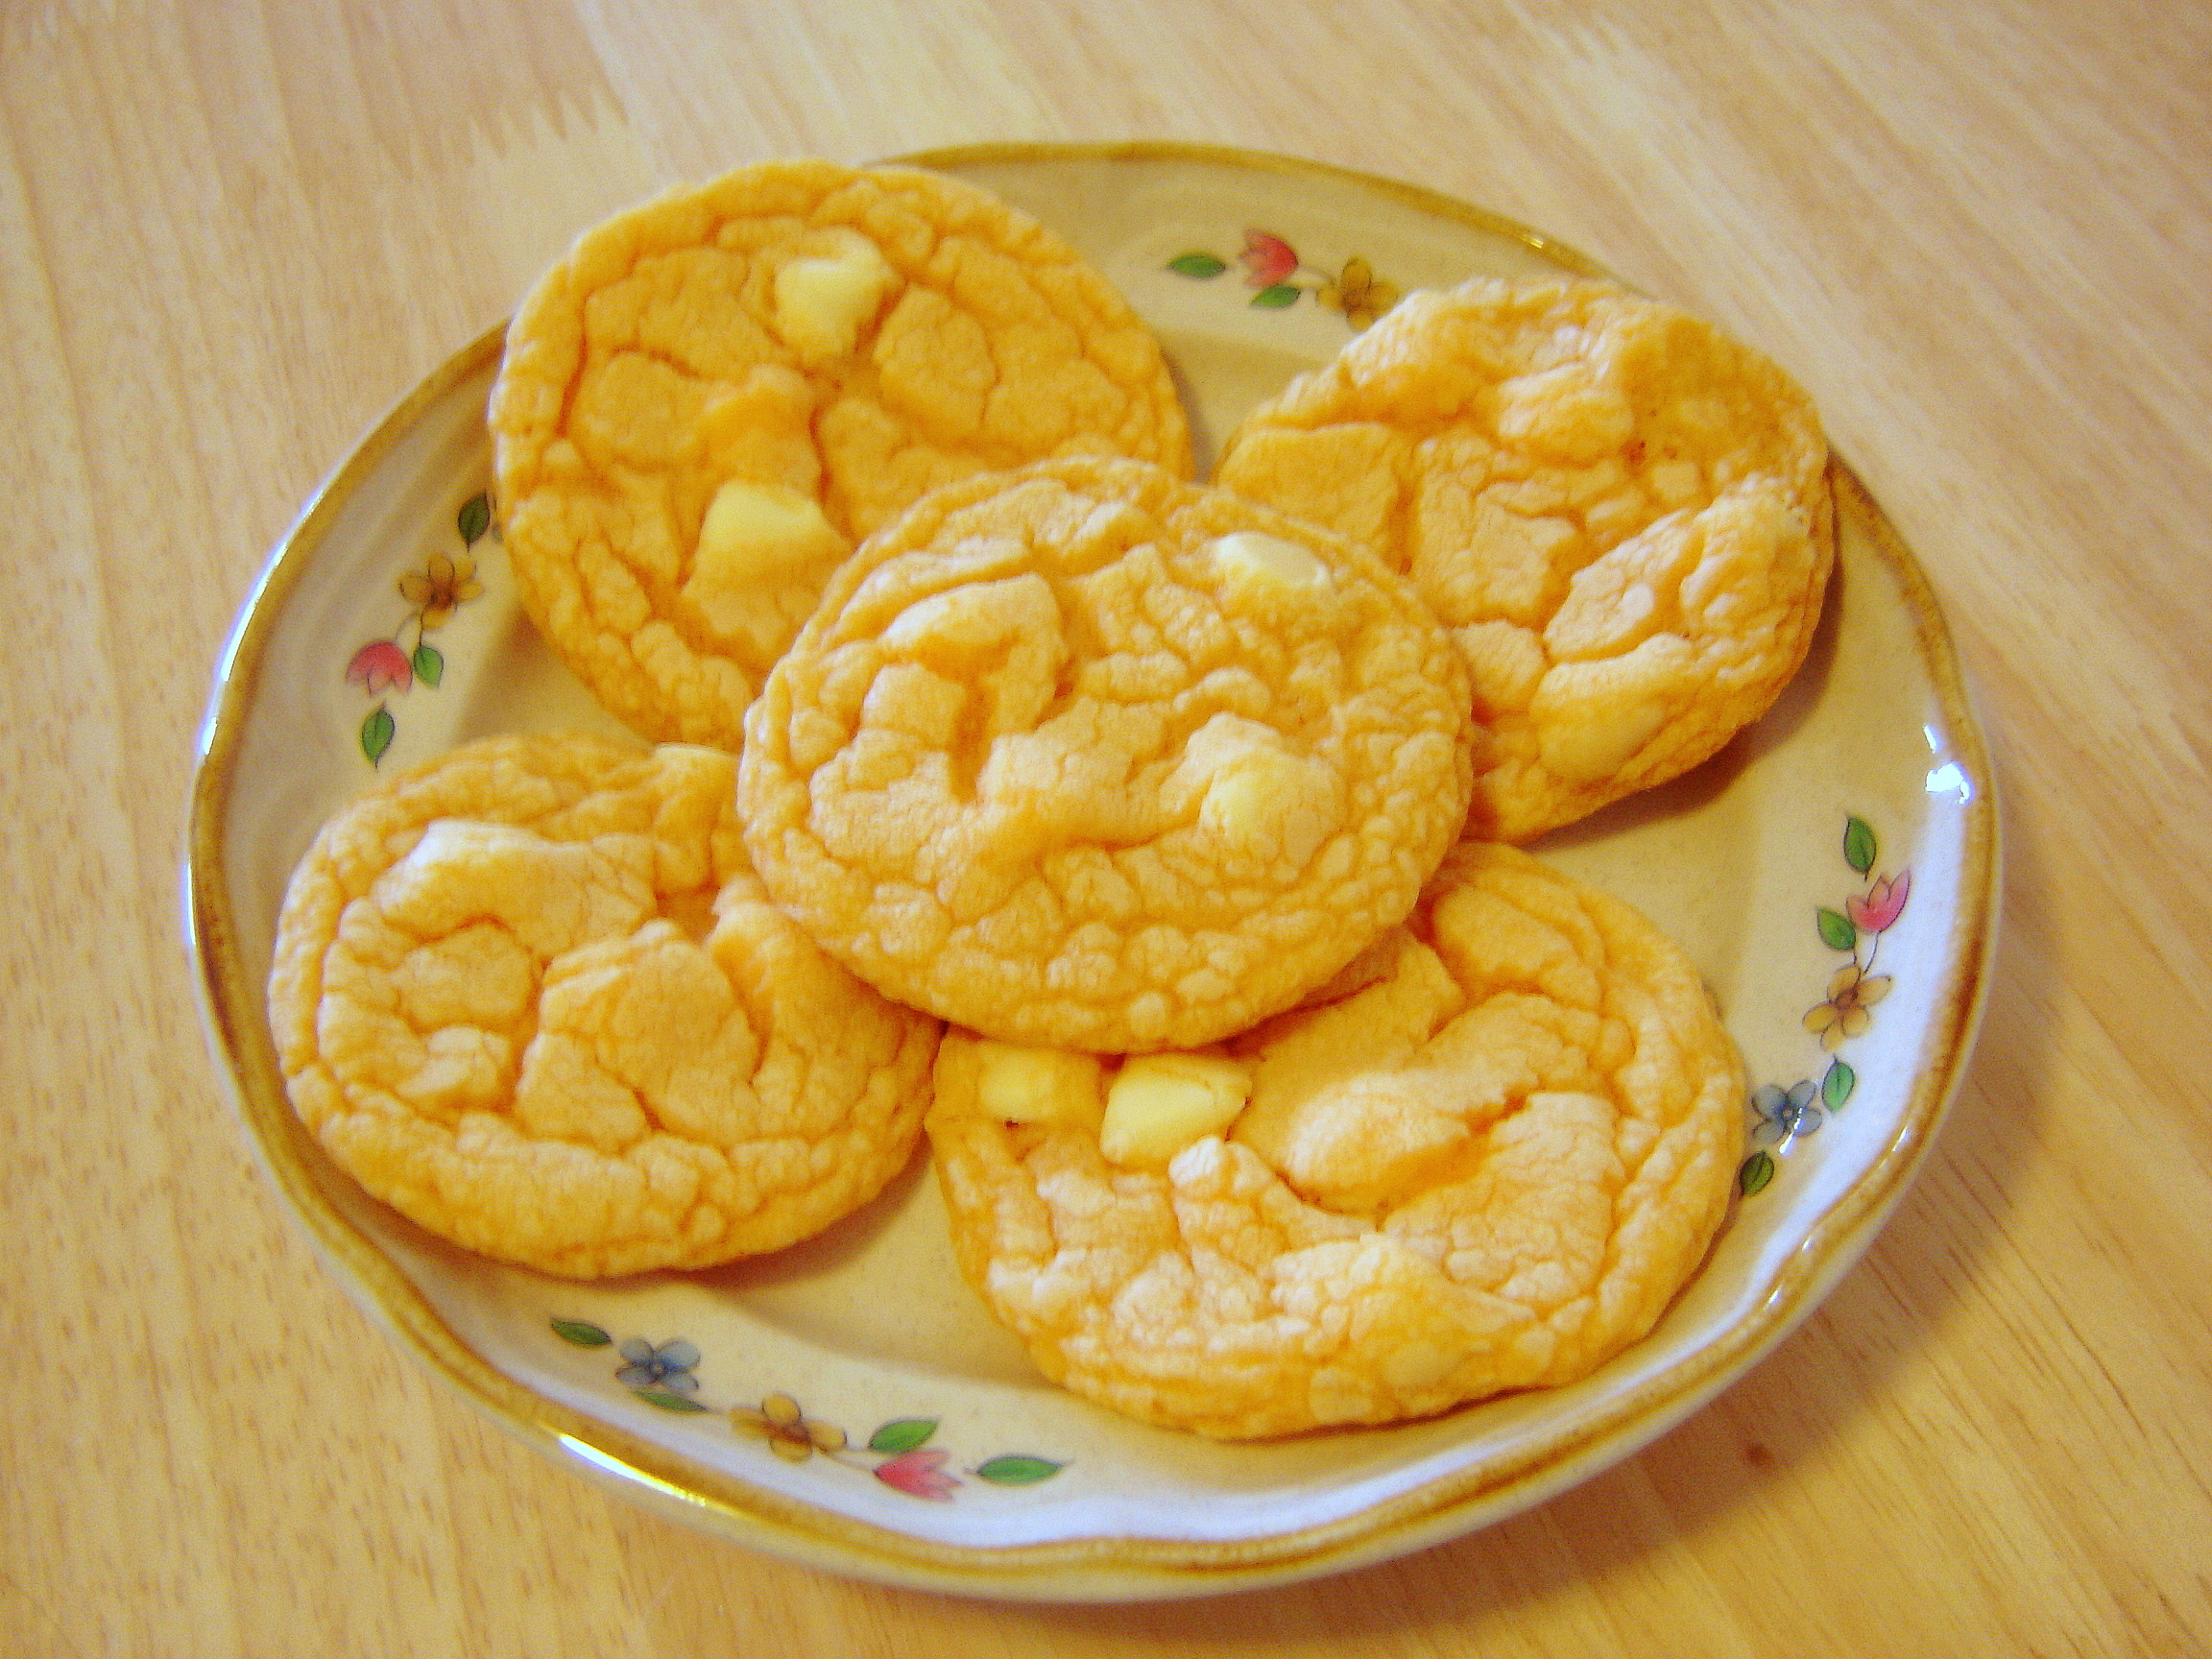 Orange White Chocolate Chip Cookies | At Home in Alaska